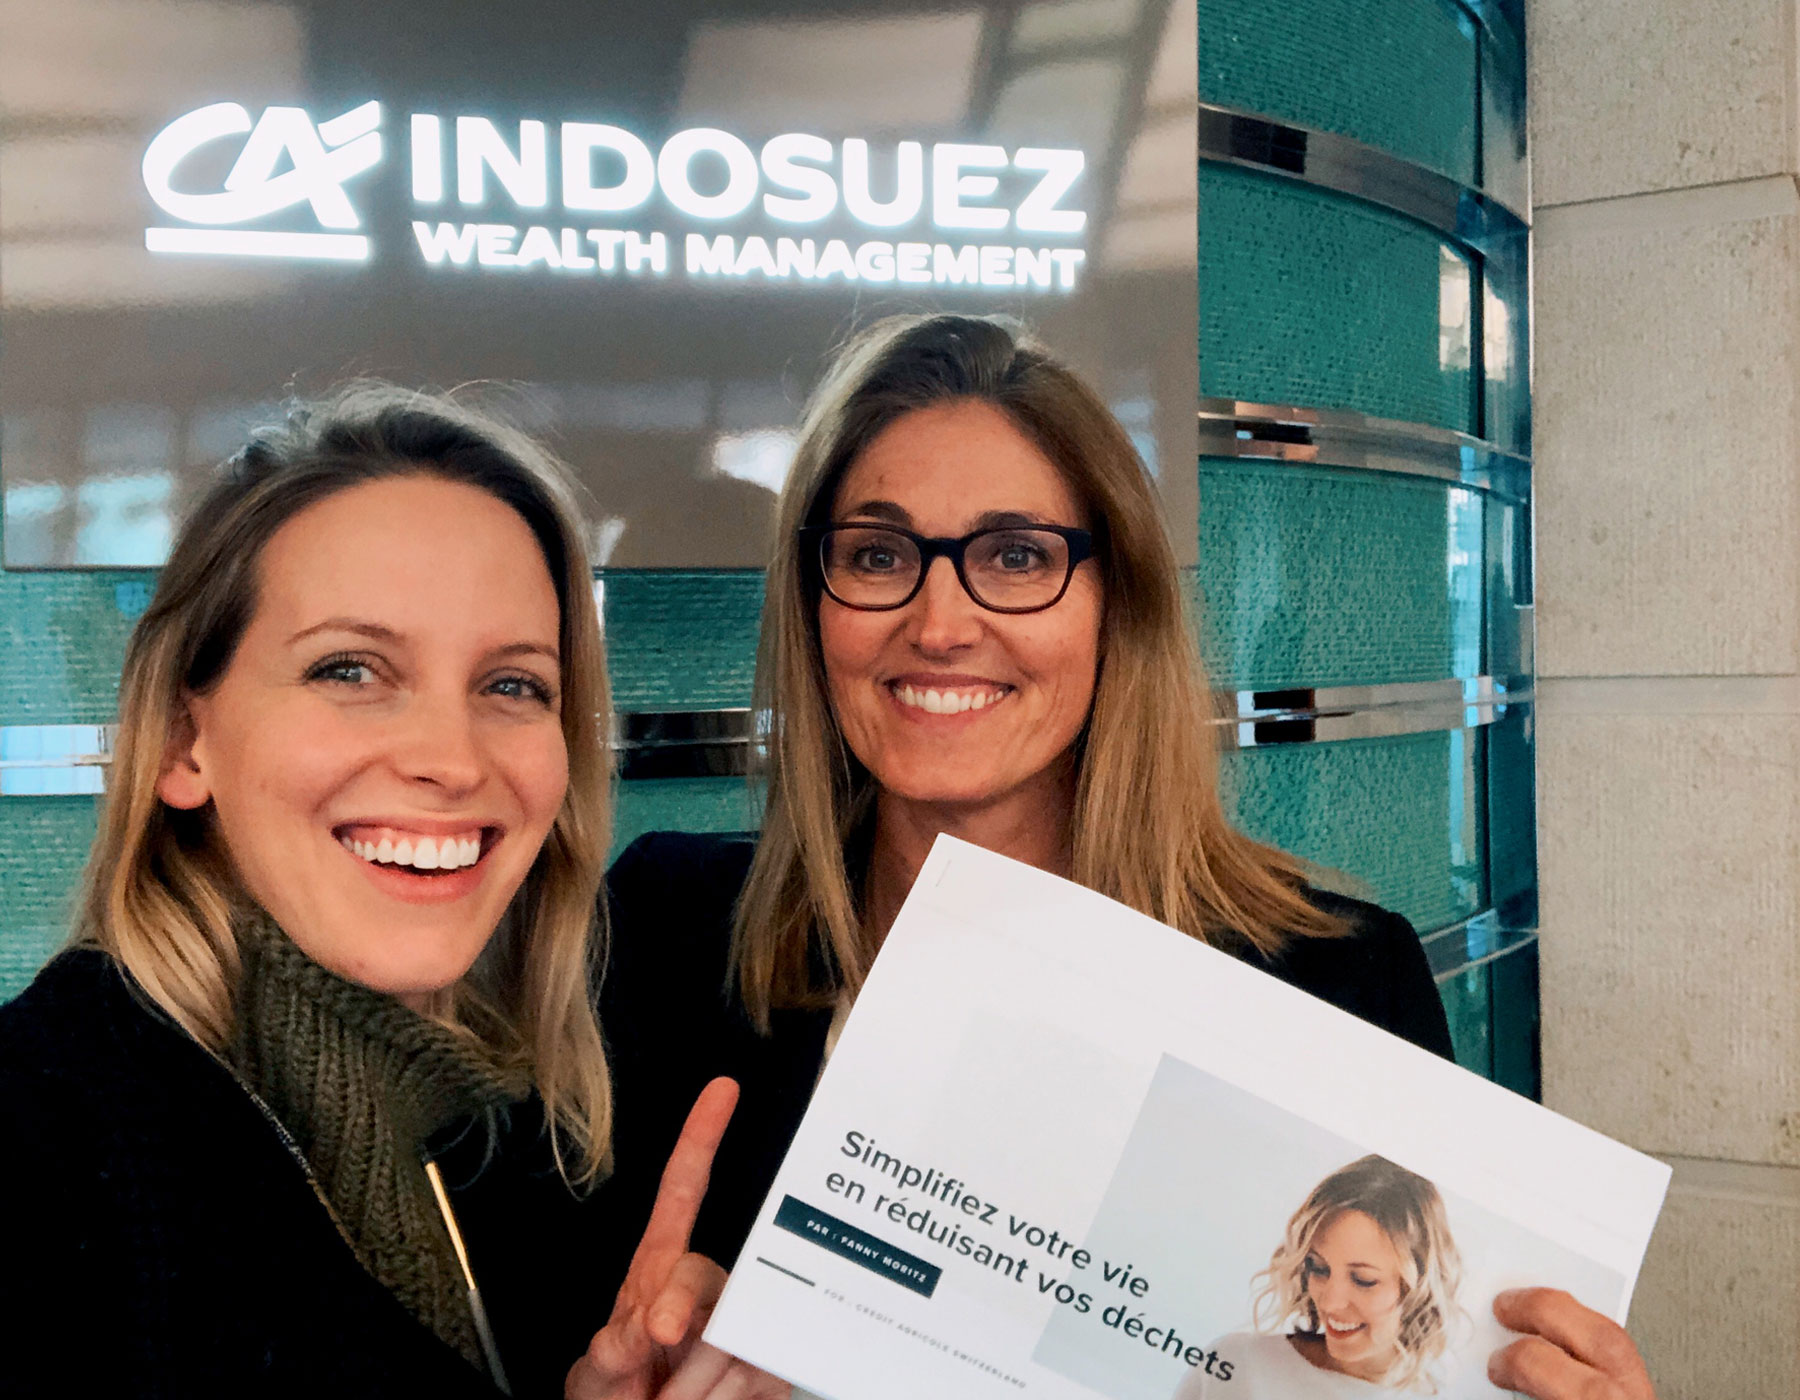 Talk about Zero Waste at Indosuez - Suisse - January 2020